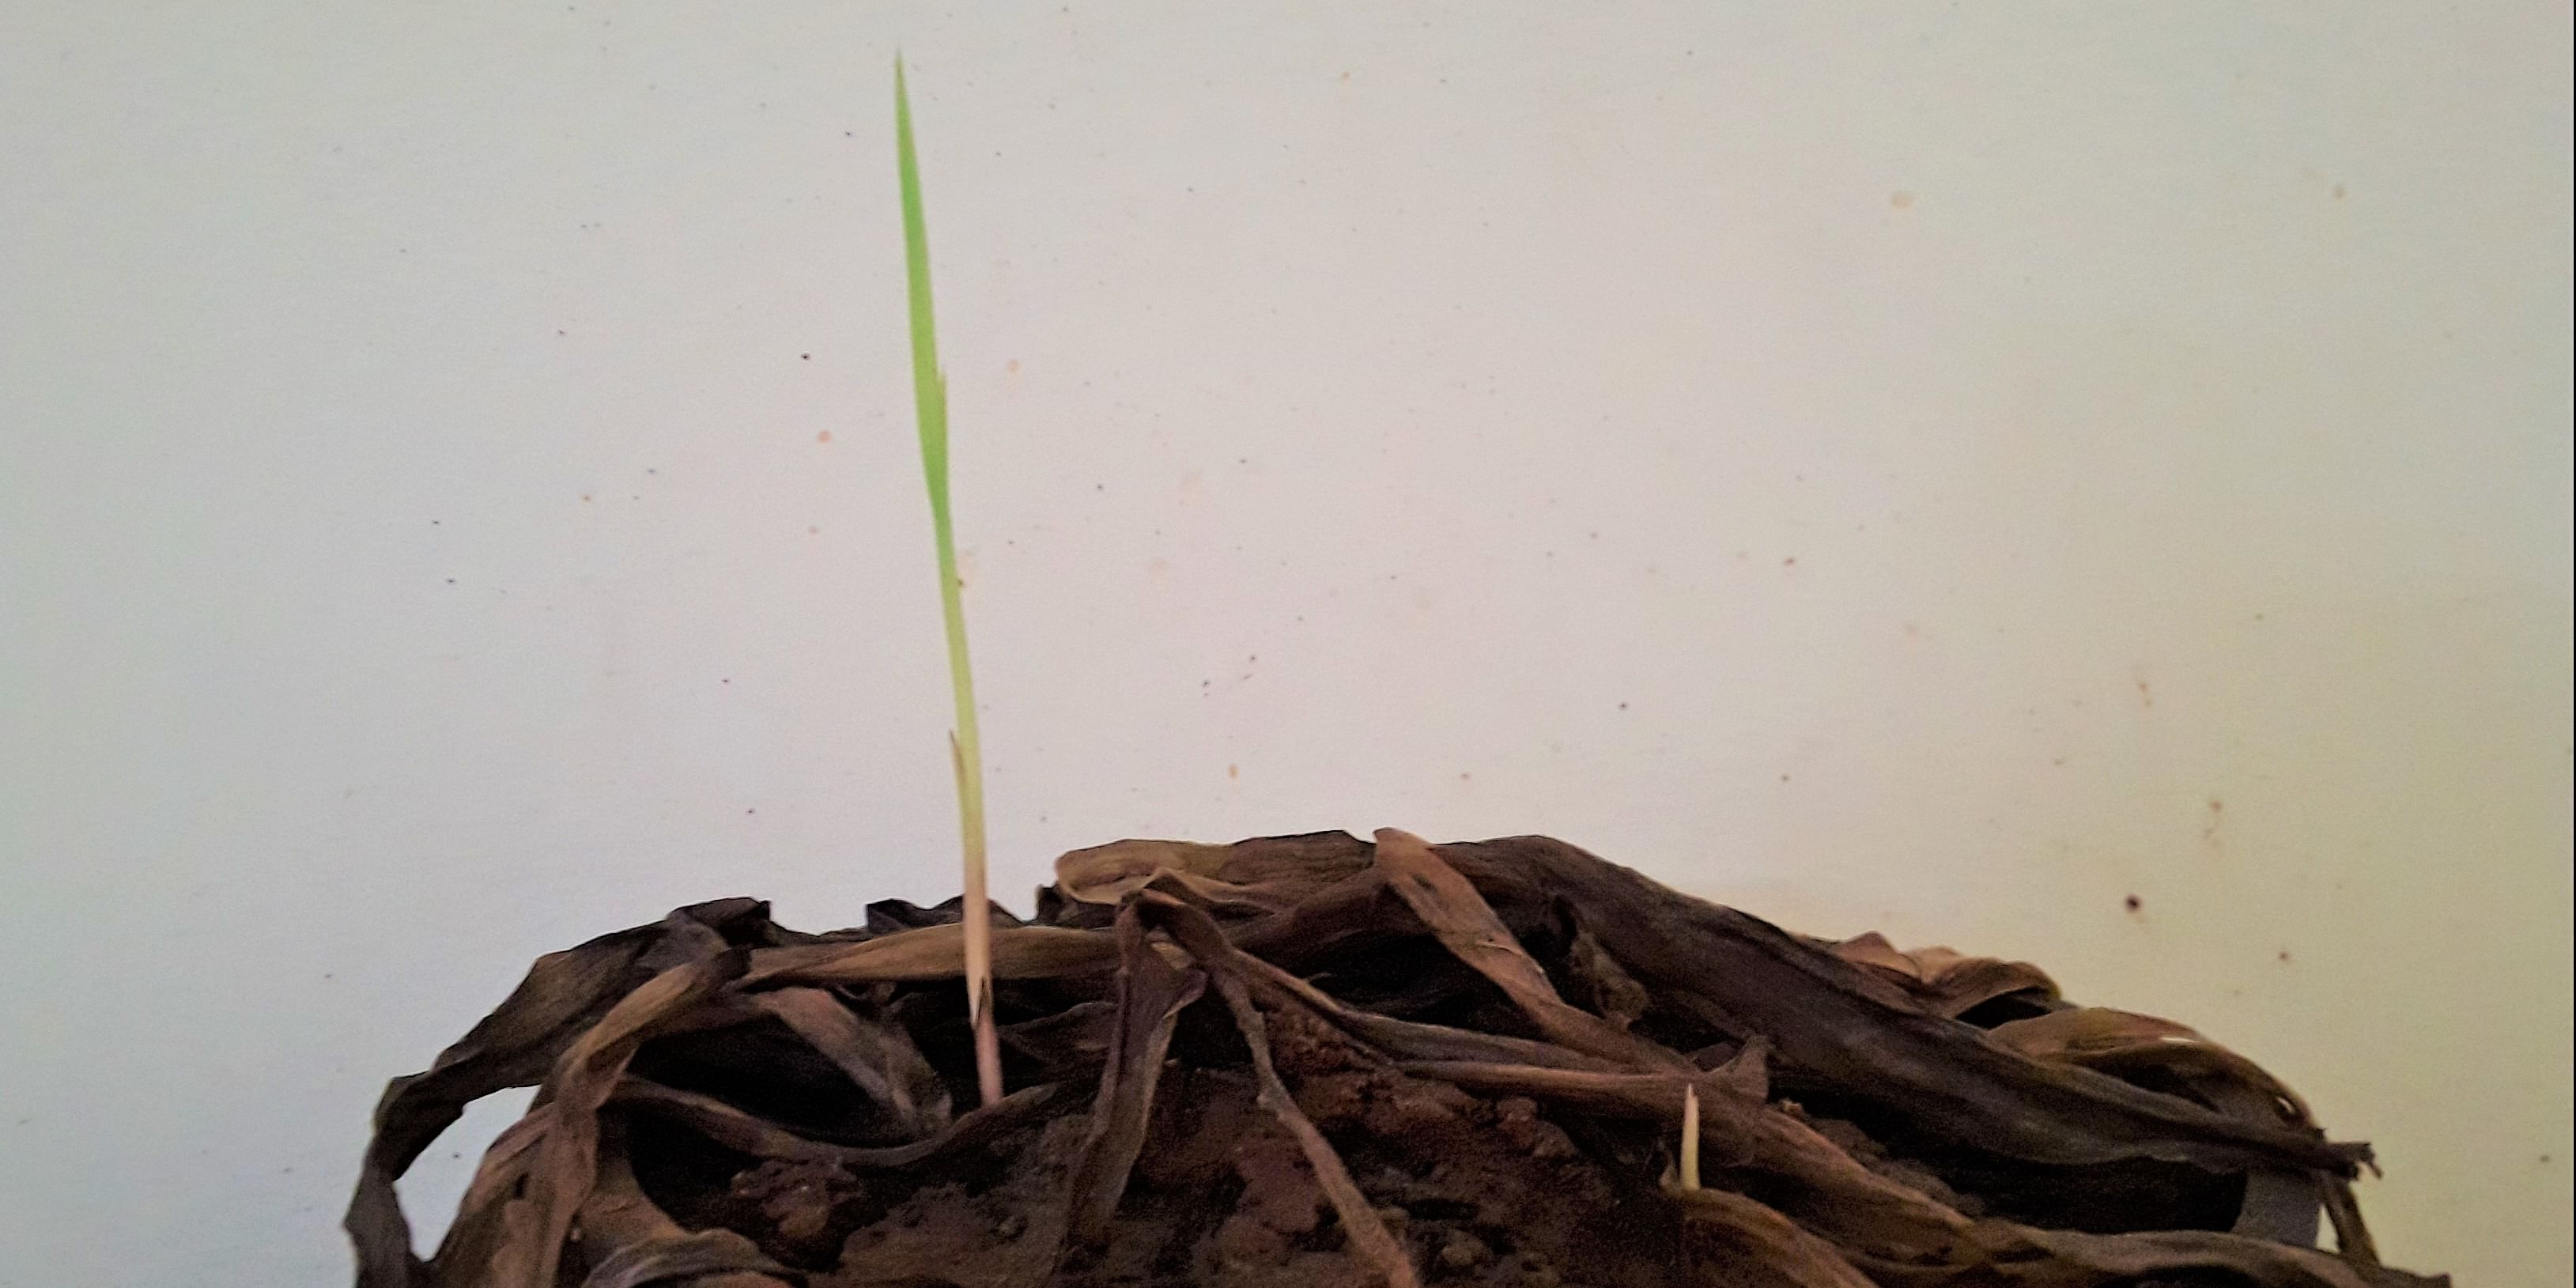 Reviving a dead spider plant - new shoots growing from strong roots. I believe in never giving up.